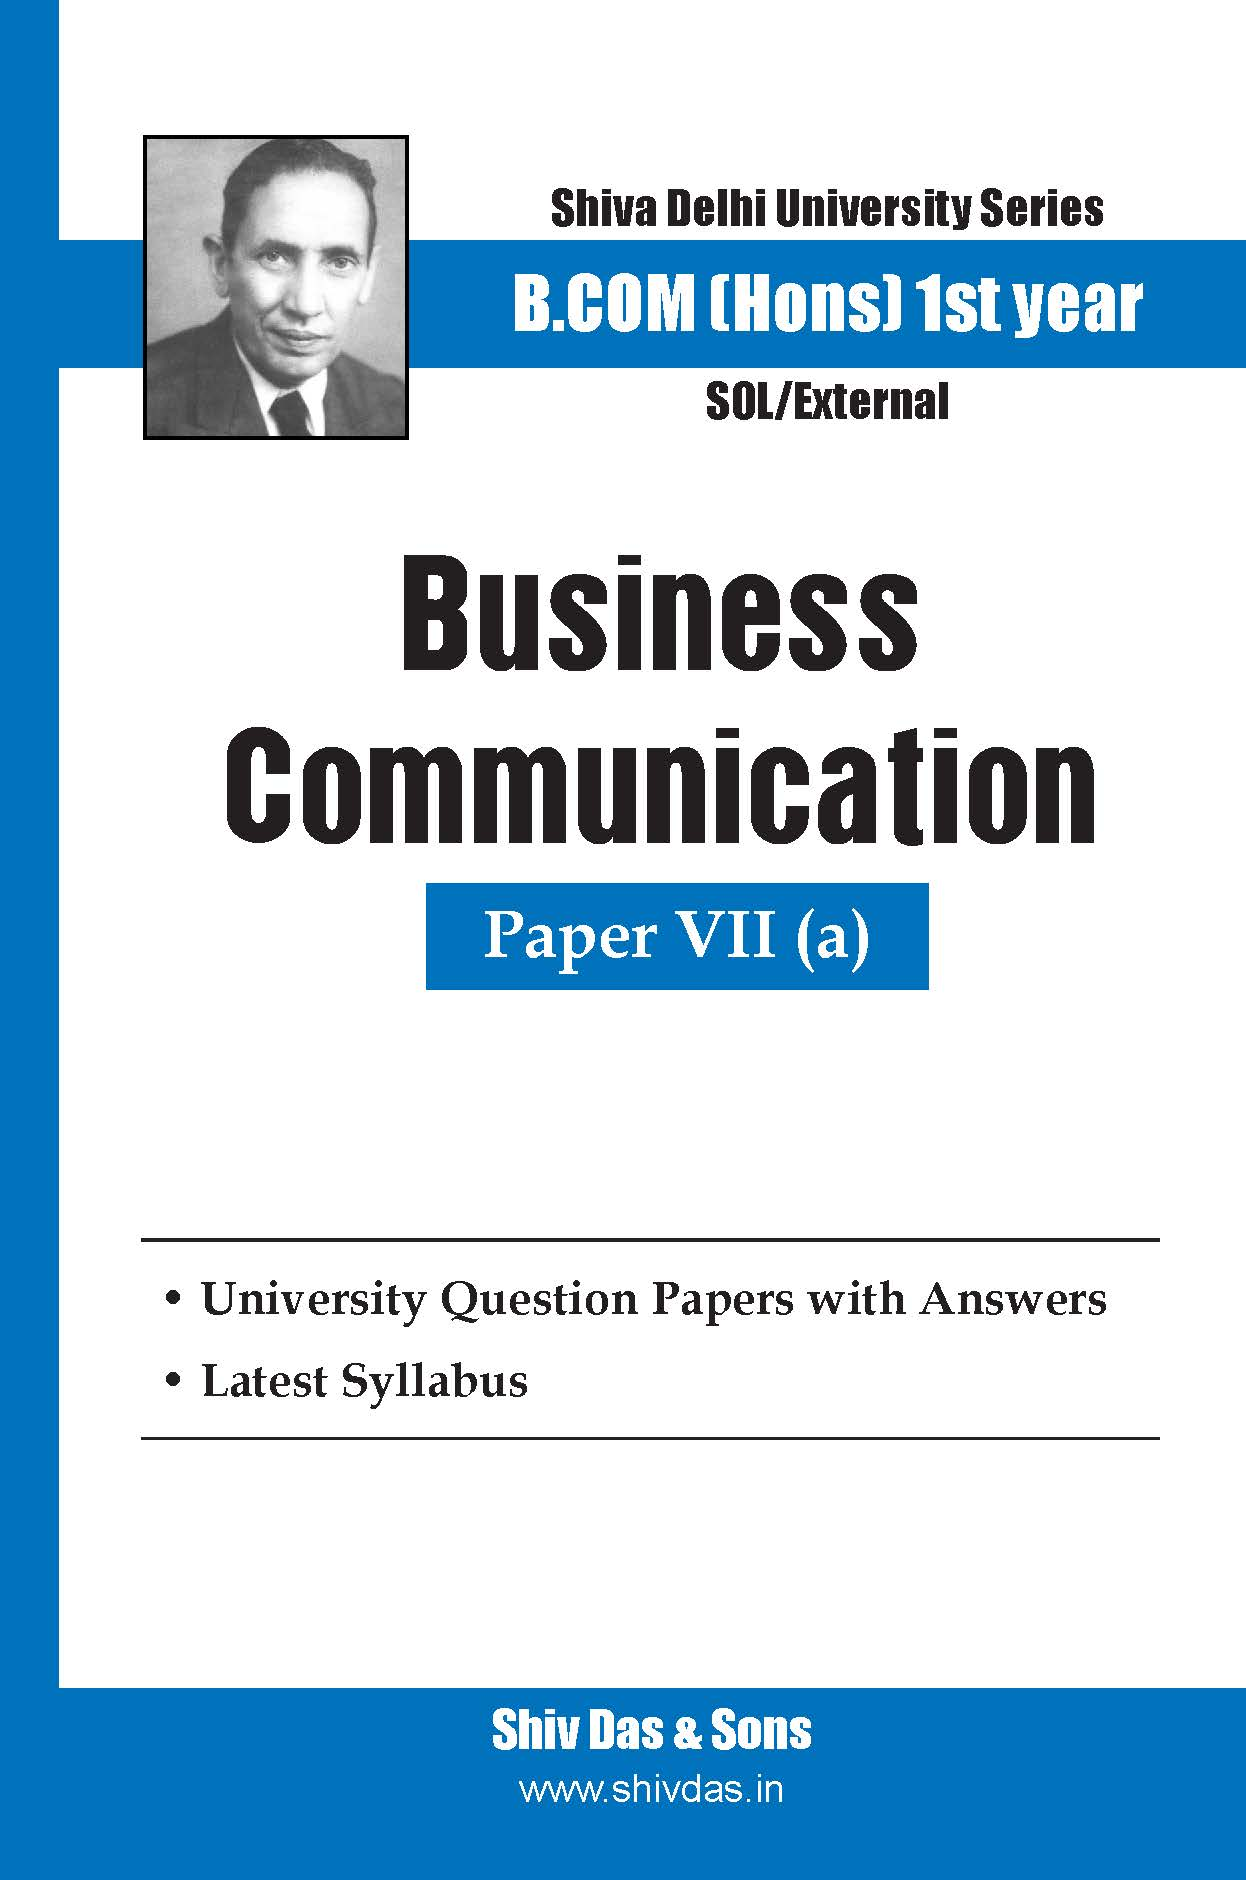 B.Com Hons-SOL/External-1st Year-Business Communication-Shiv Das-Delhi University Series